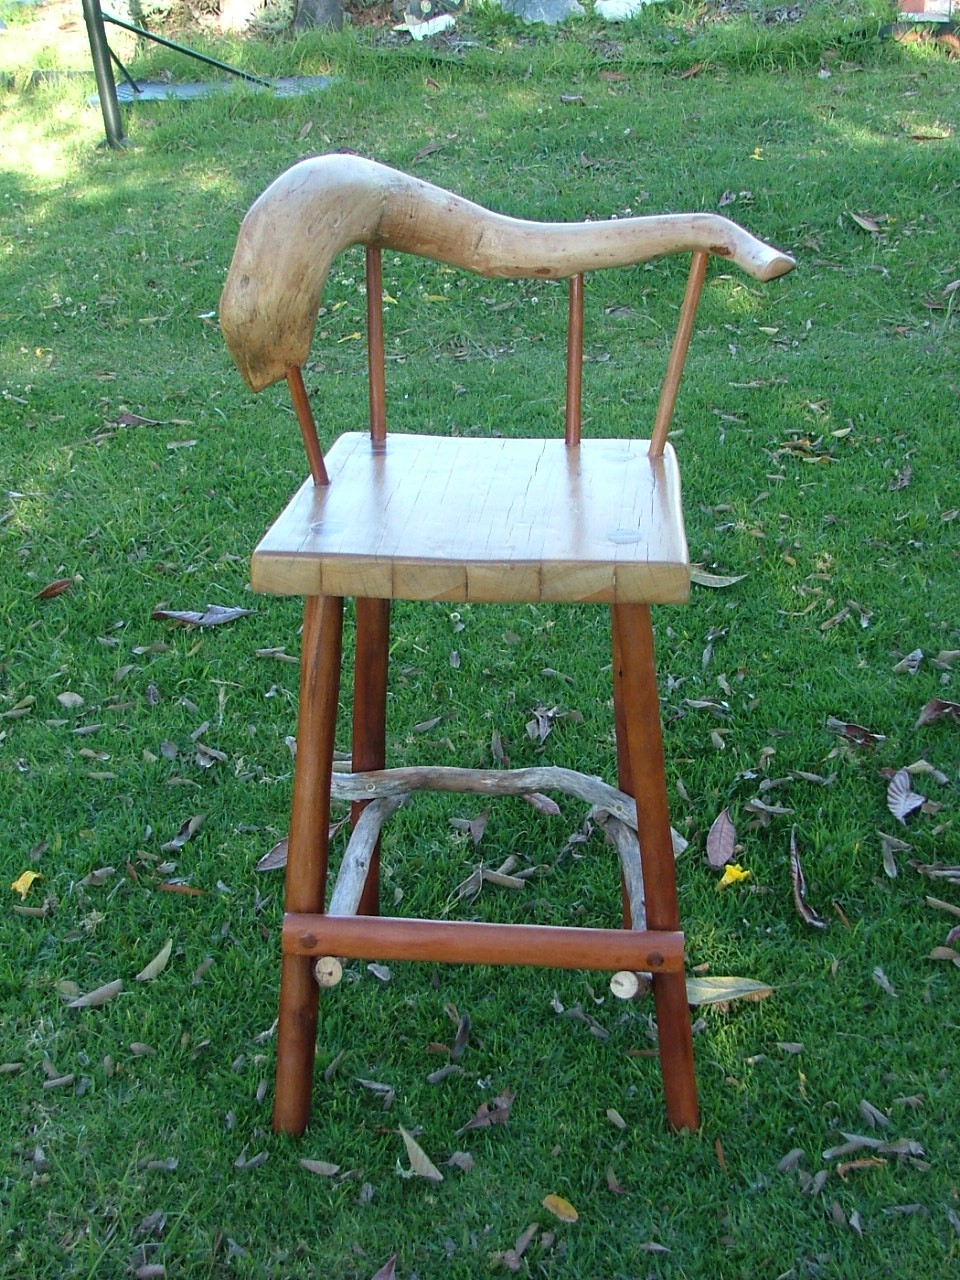 G n T Chair - Fig Tasmanian Oak and Rose